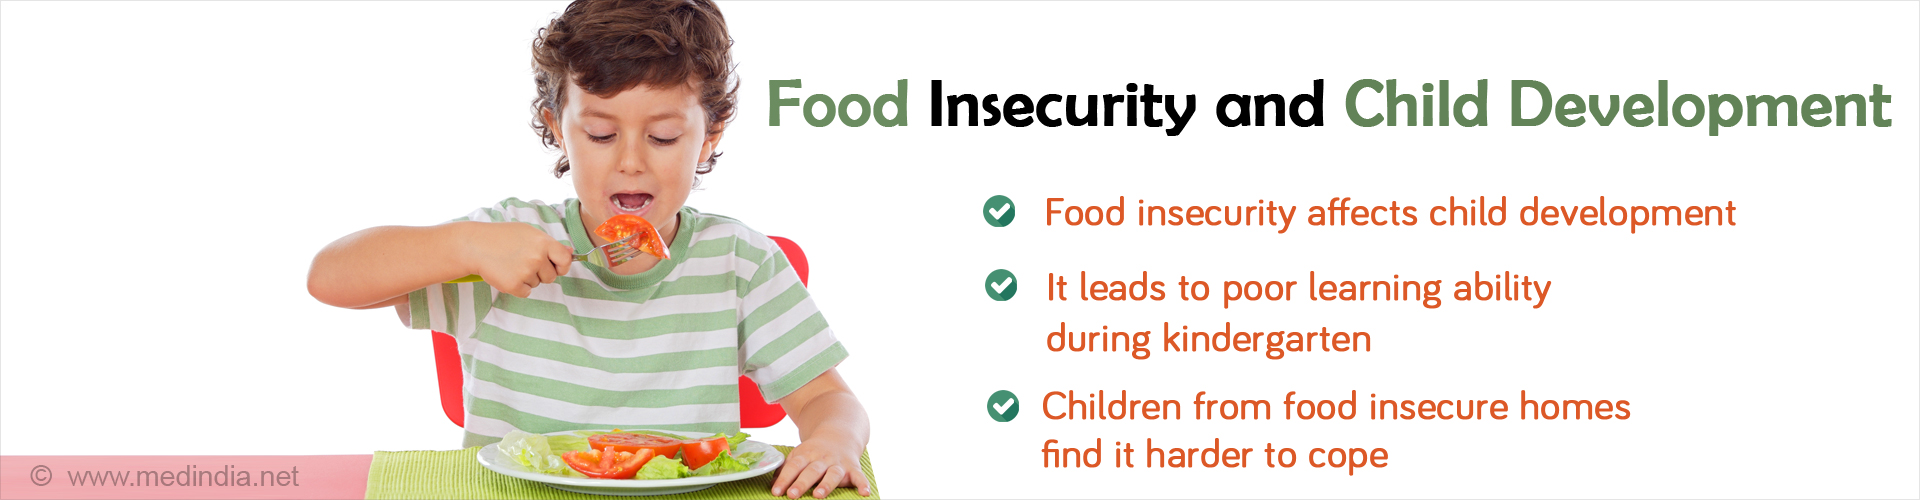 Kindergarten Children Suffering Food Insecurity Perform Poorly